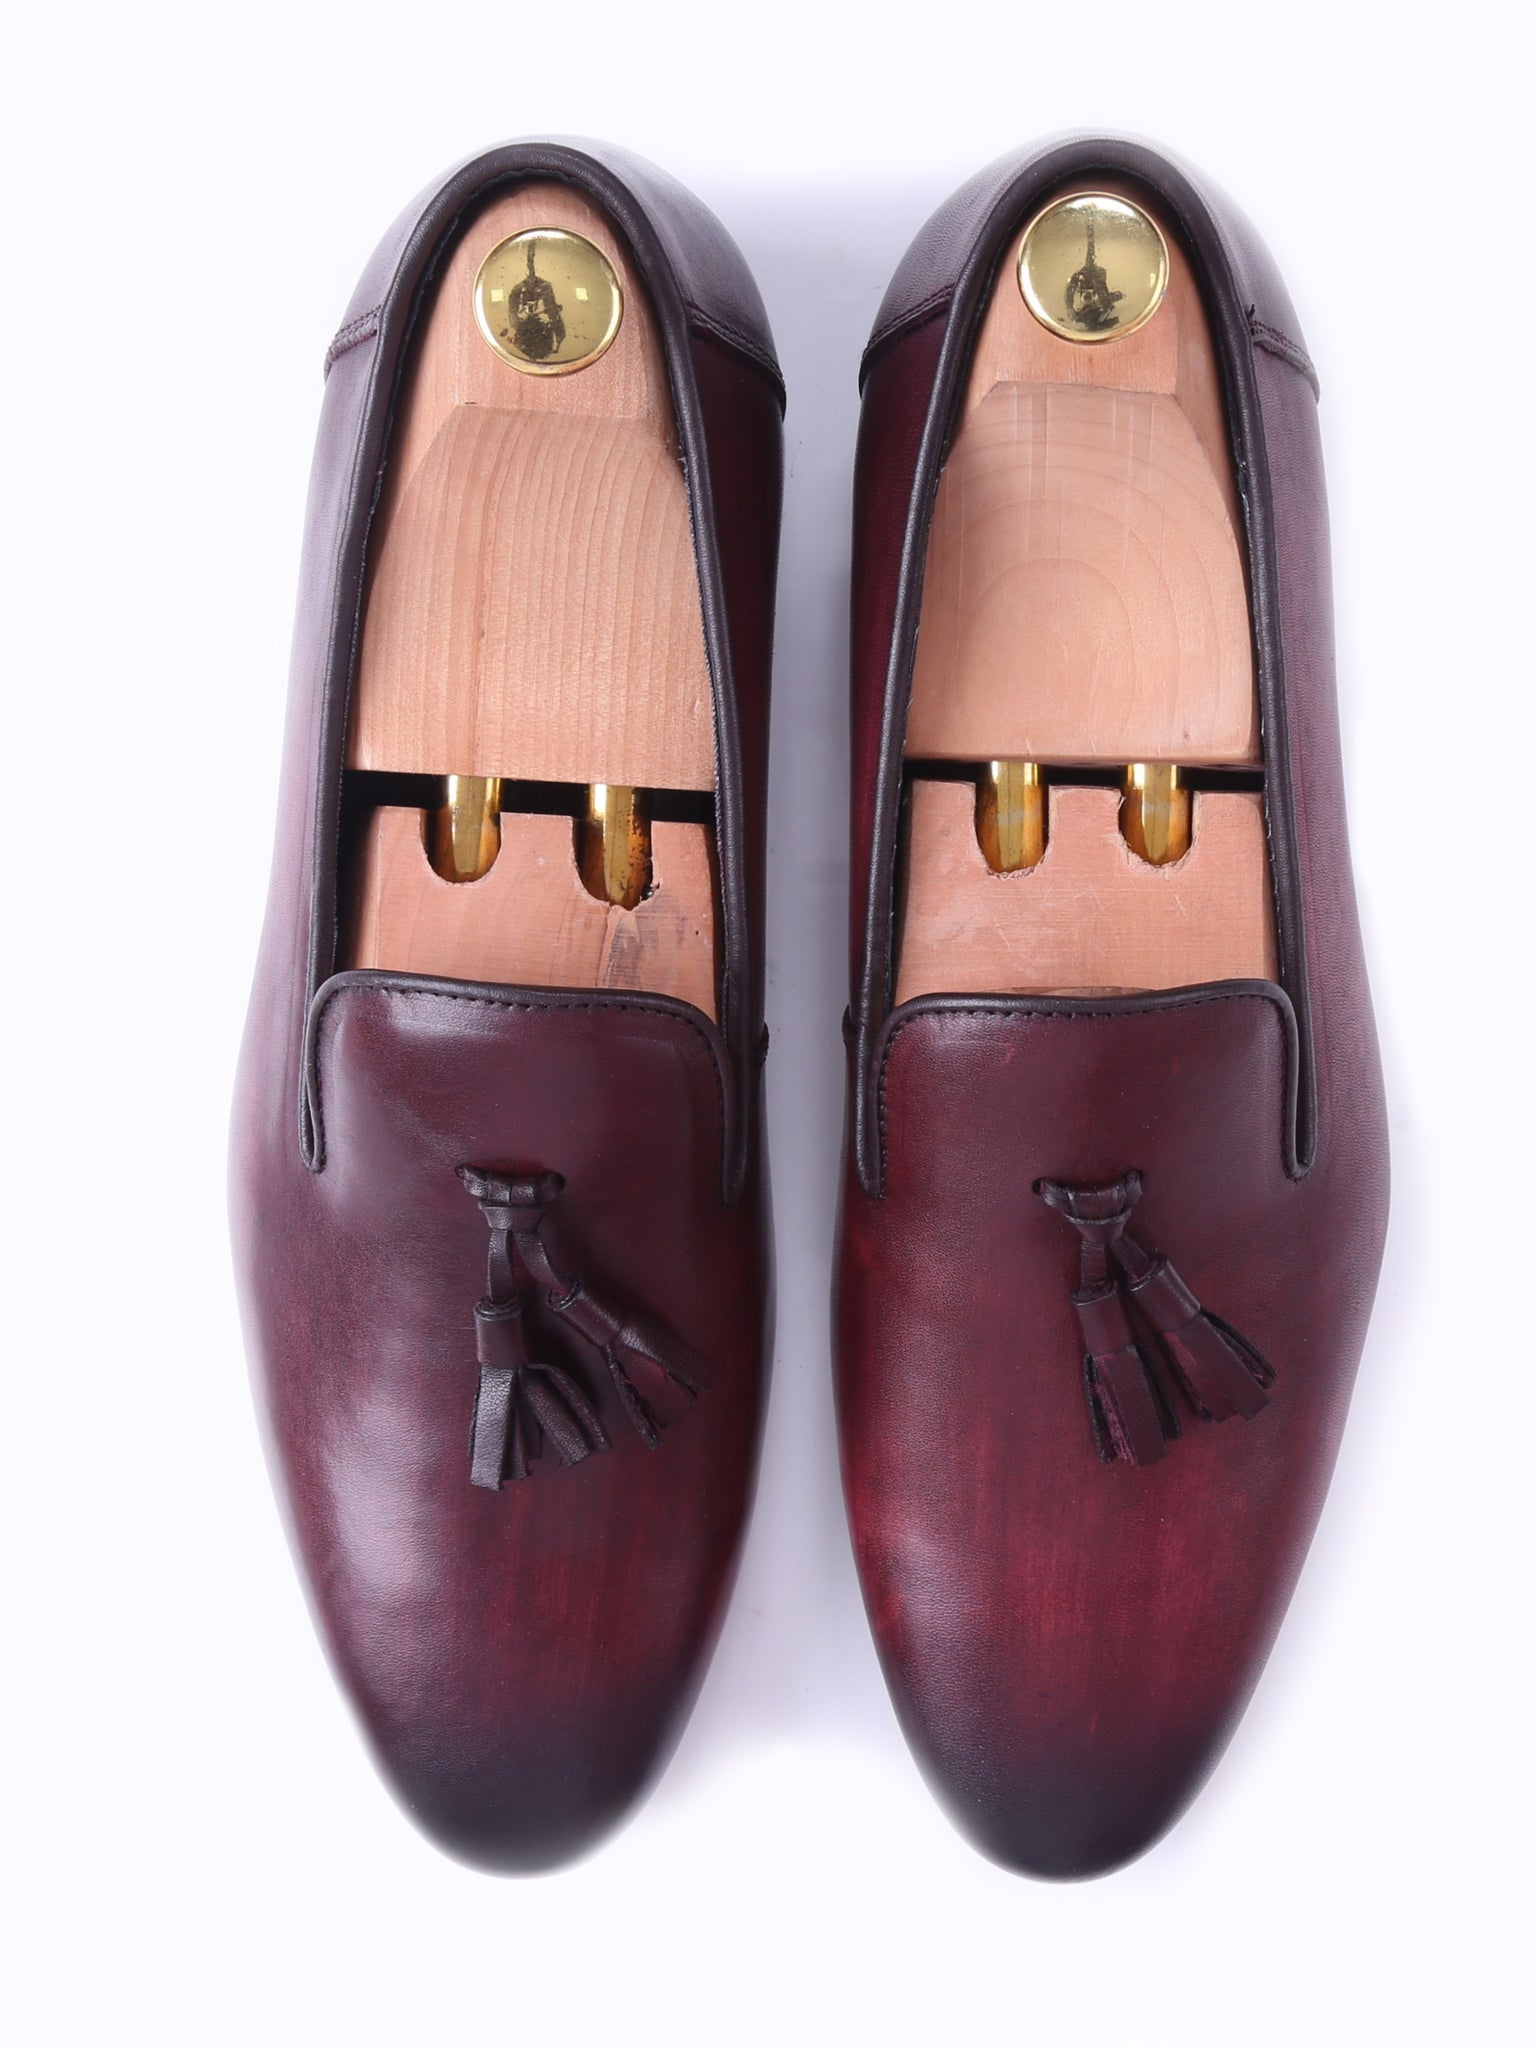 Shoes Loafer Slipper - Red Burgundy (Hand Painted Patina)